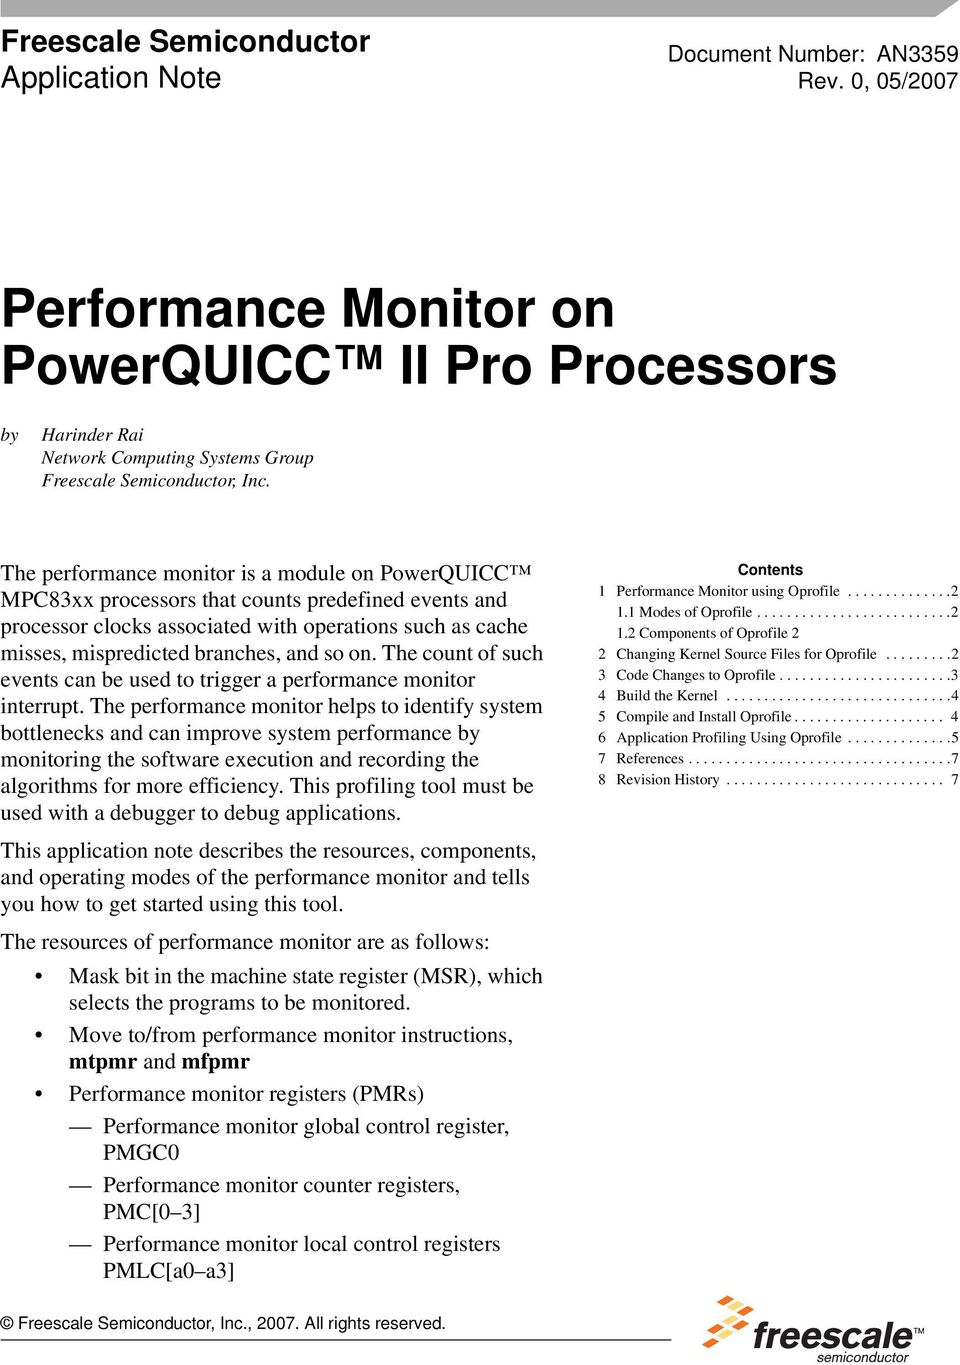 The performance monitor is a module on PowerQUICC MPC83xx processors that counts predefined events and processor clocks associated with operations such as cache misses, mispredicted branches, and so